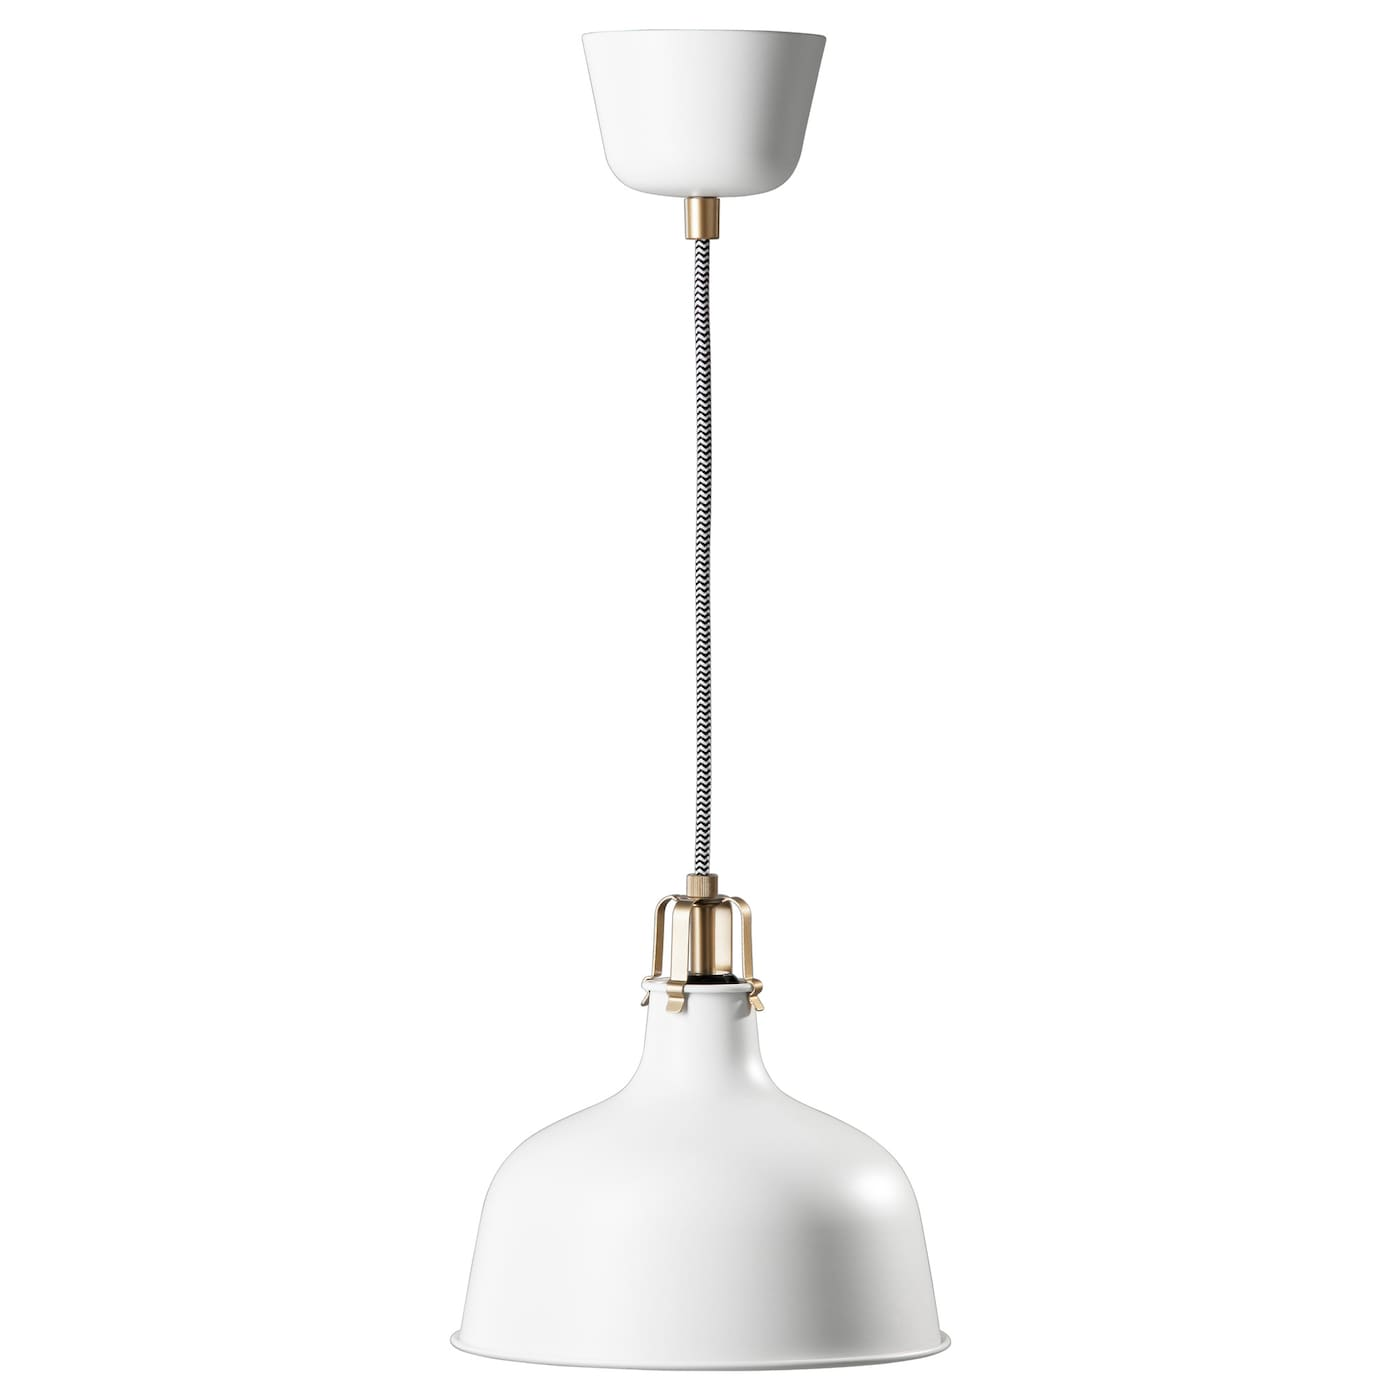 bq ceiling q departments prd pendant at white diy b tibbon light